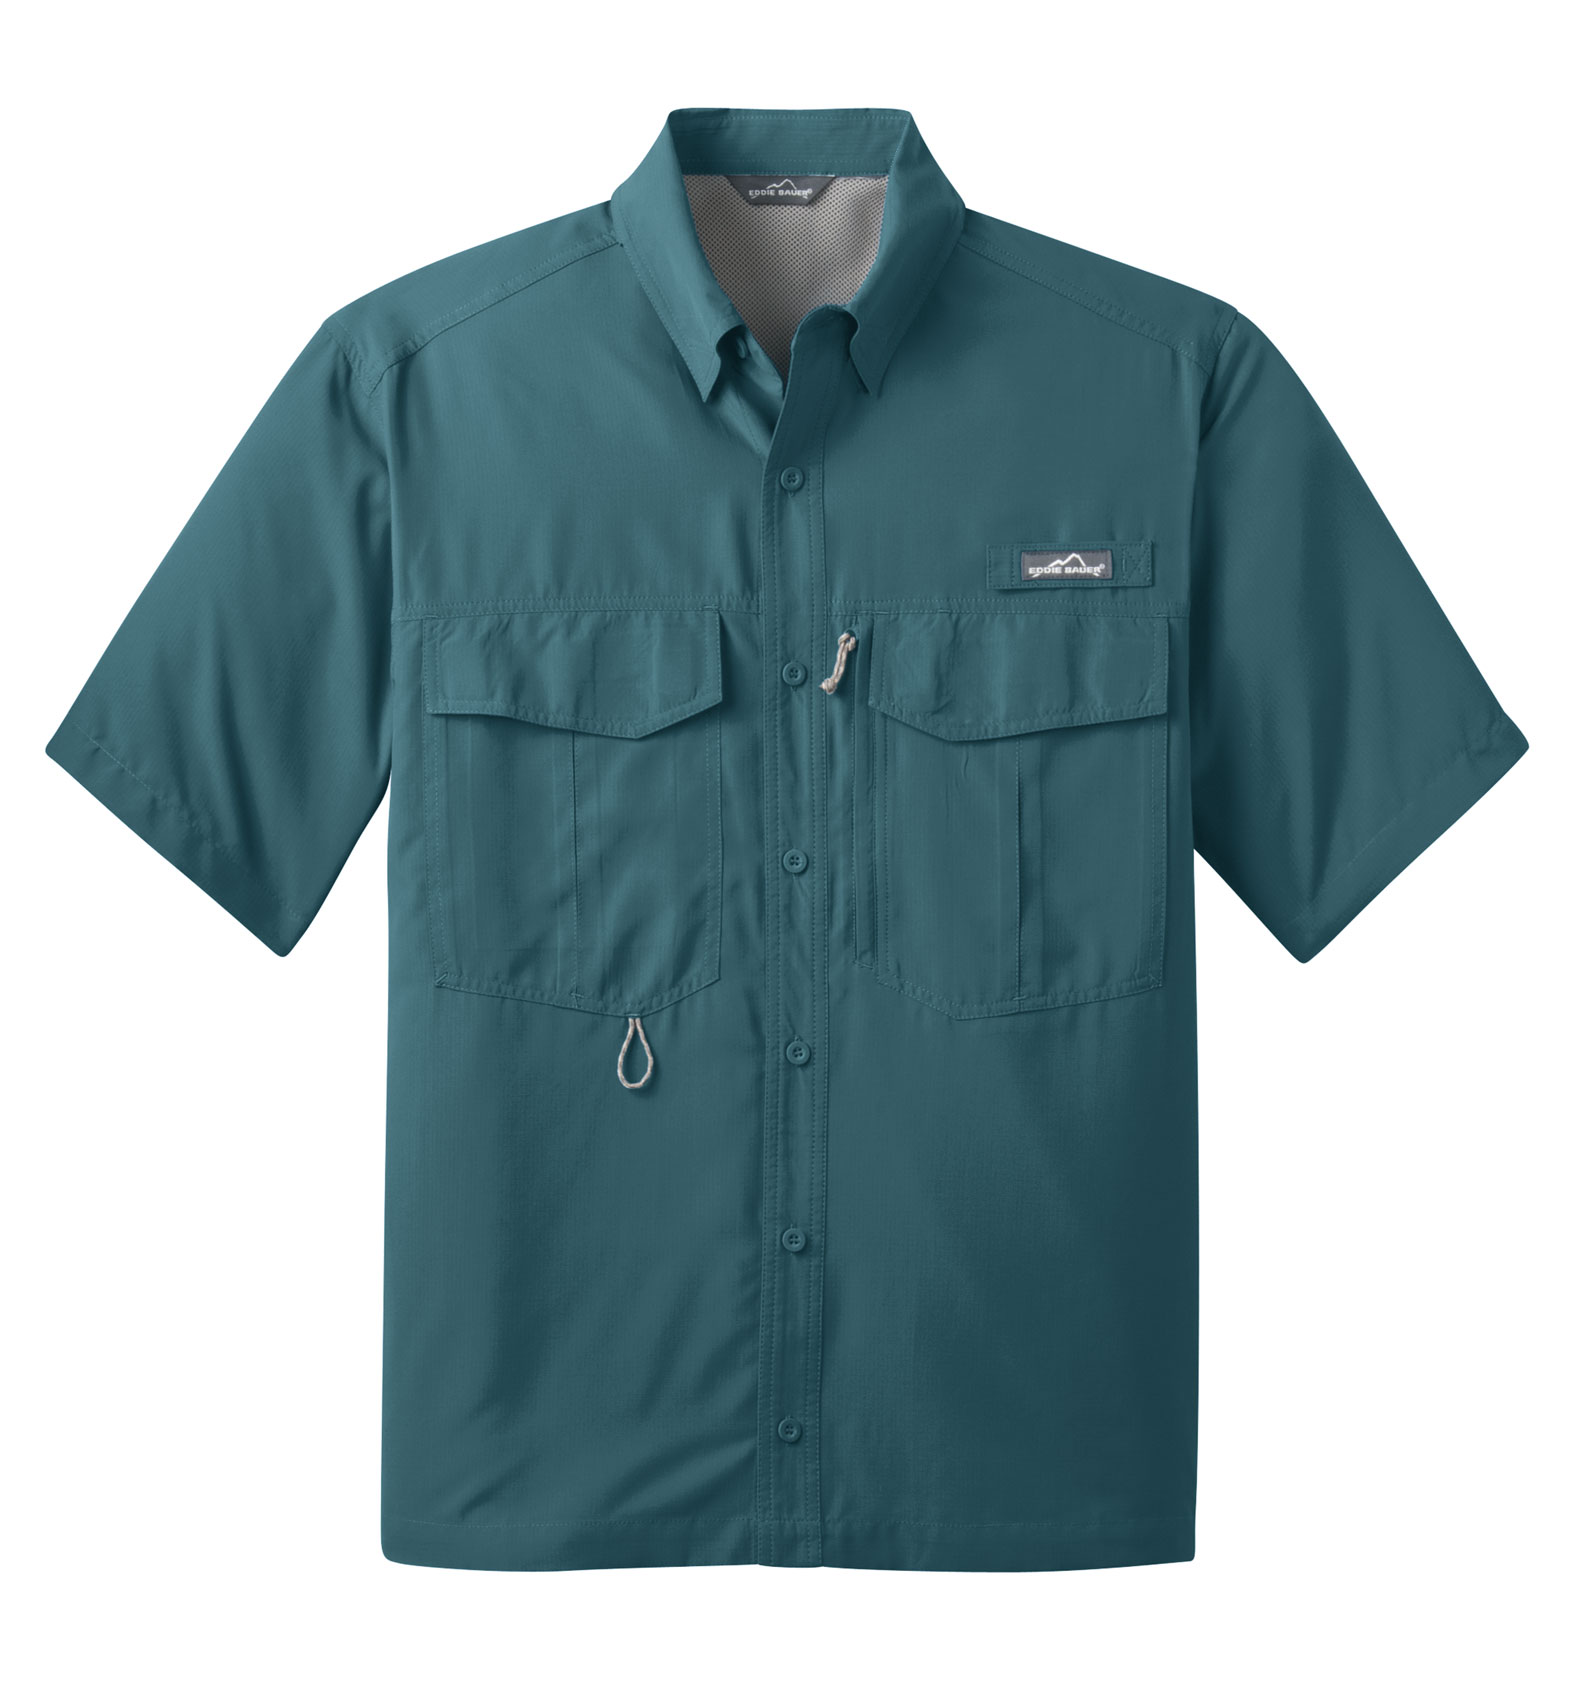 custom eddie bauer short sleeve performance fishing shirt